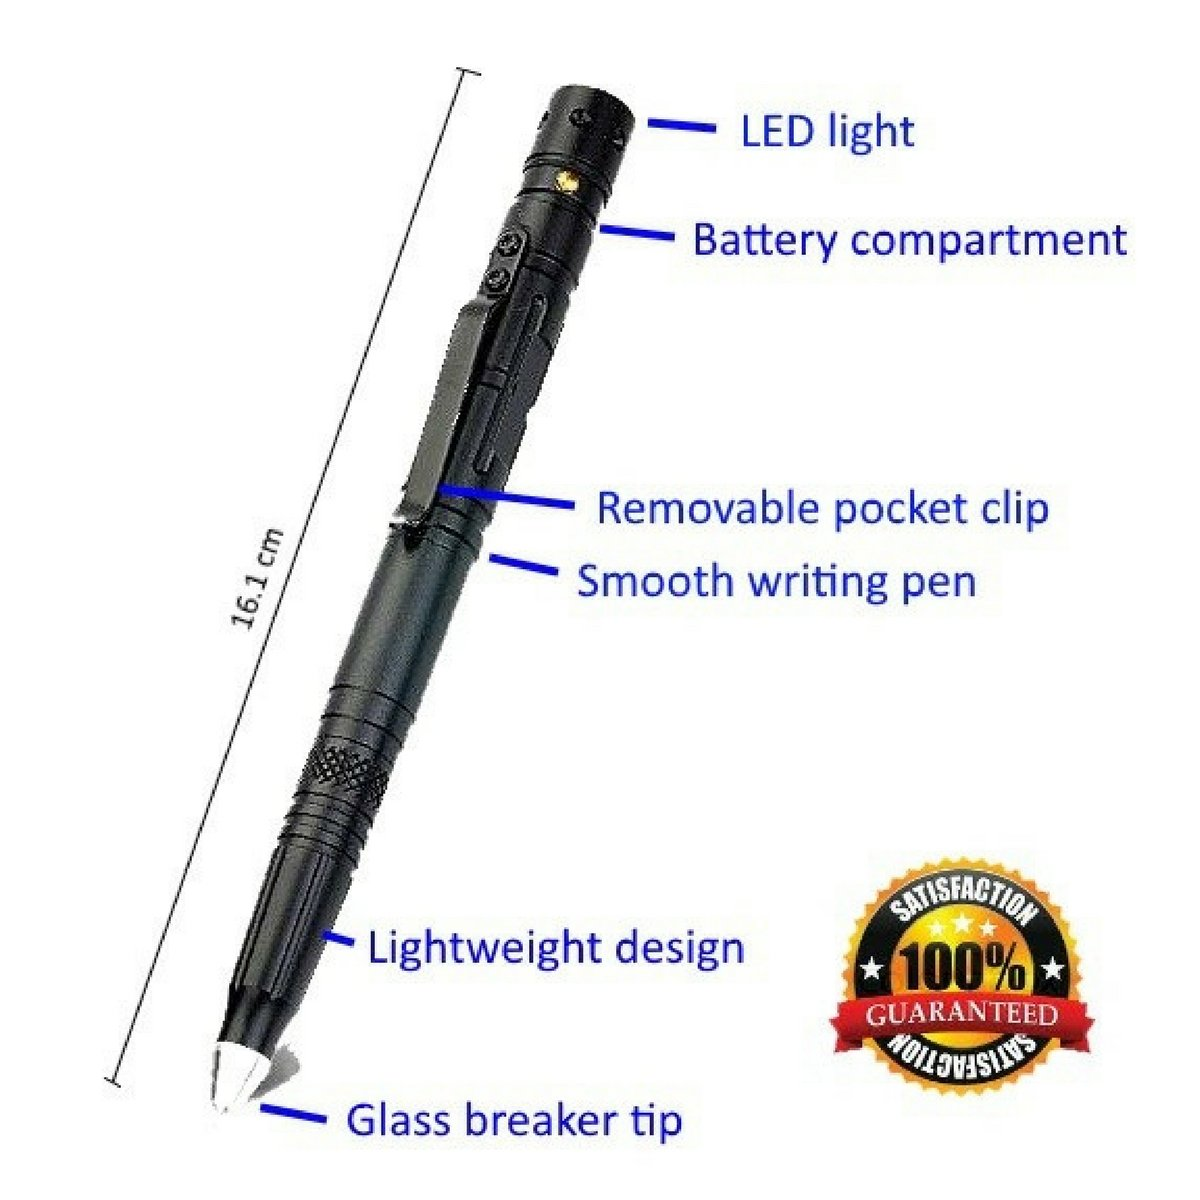 Tactical Pen for Survival and Self Defense Tool with Tungsten Tip Glass Breaker for Emergency Escape, 2017 Best Portable Military Police Defender with Bright Push Button LED Flashlight and Ballpoint